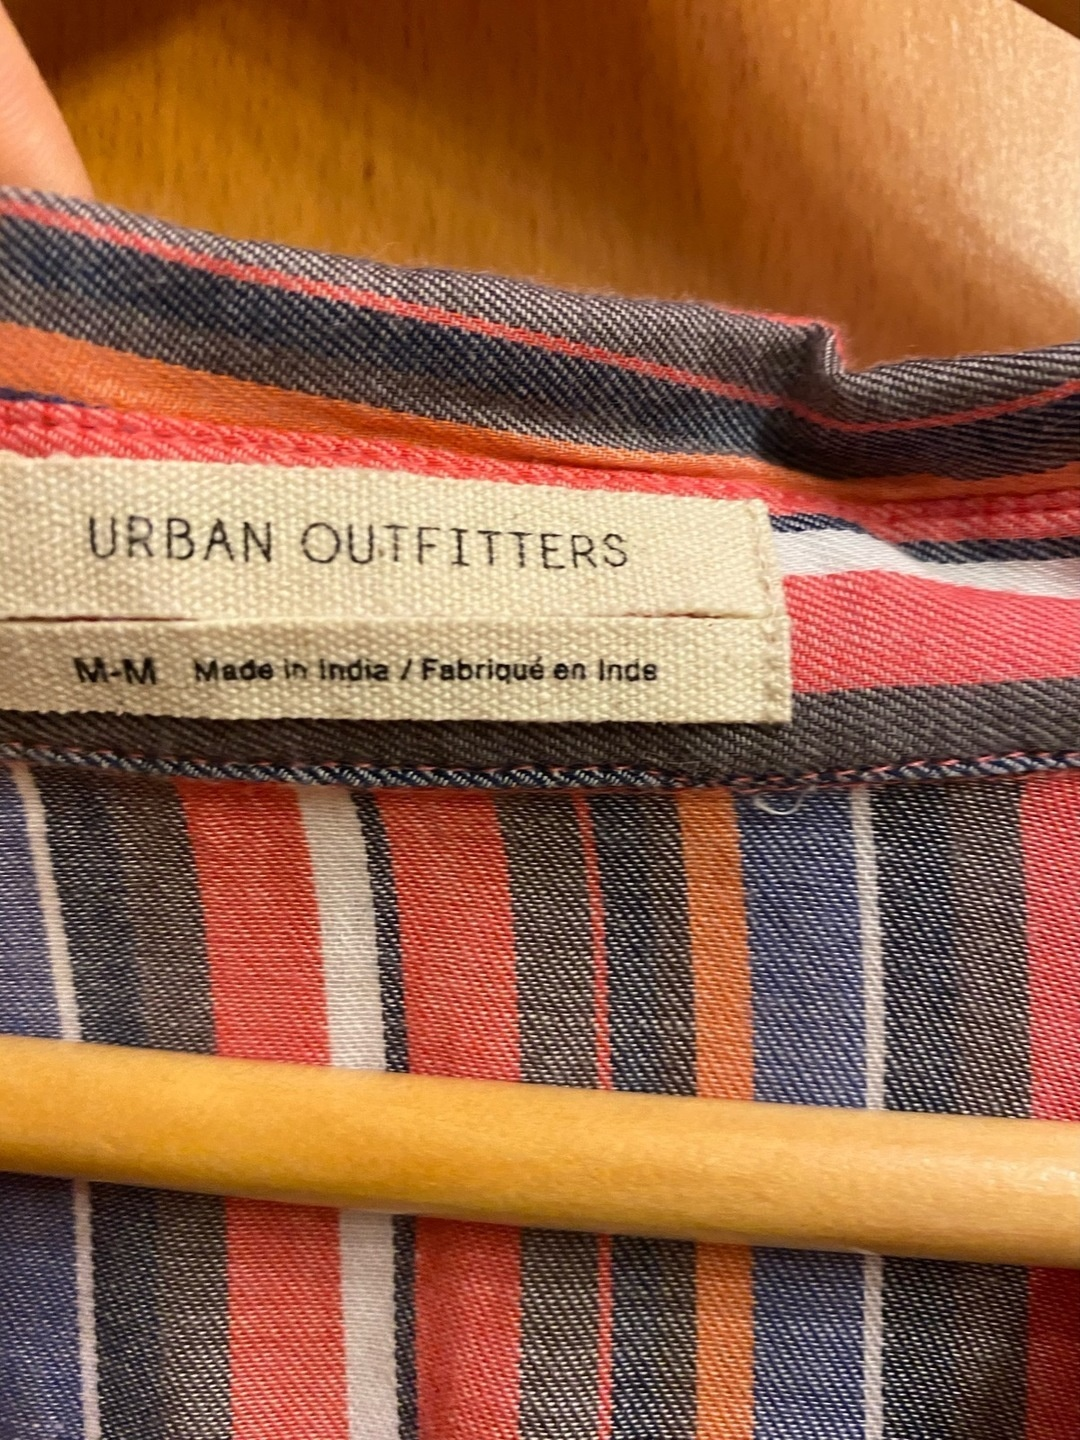 Women's blouses & shirts - URBAN OUTFITTERS photo 3